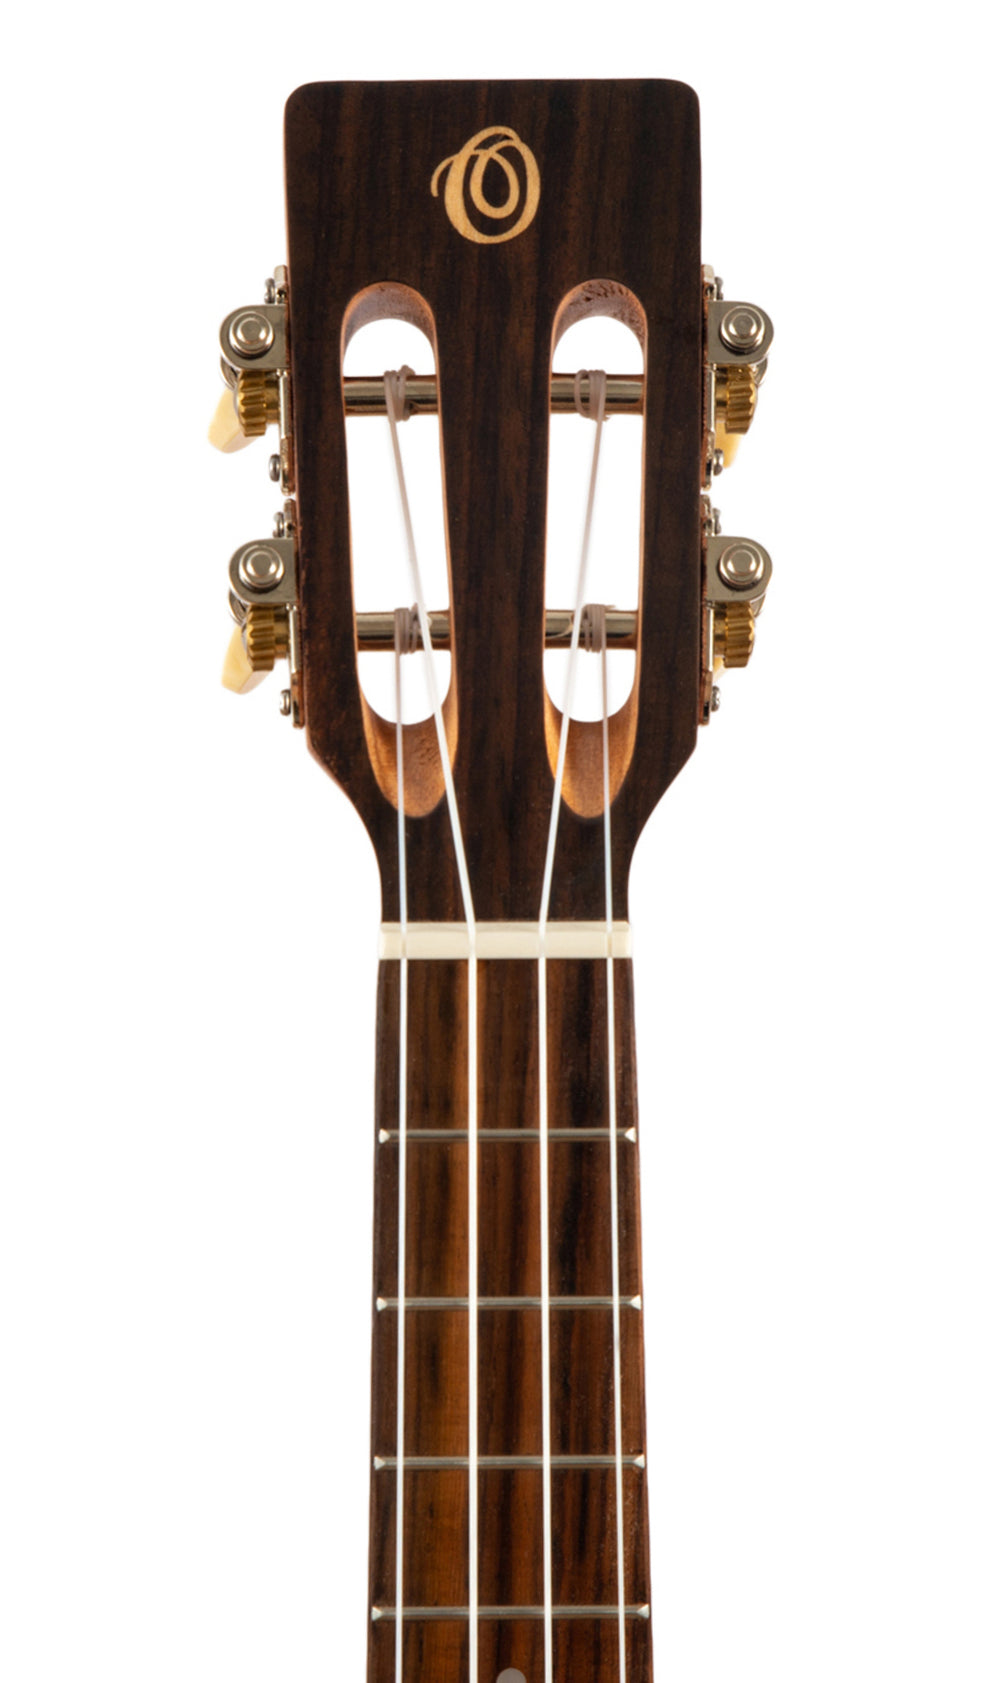 Ohana TK-70R Tenor Ukulele Solid Spruce Top Rosewood Back & Sides (One Strap Buttons Installed)